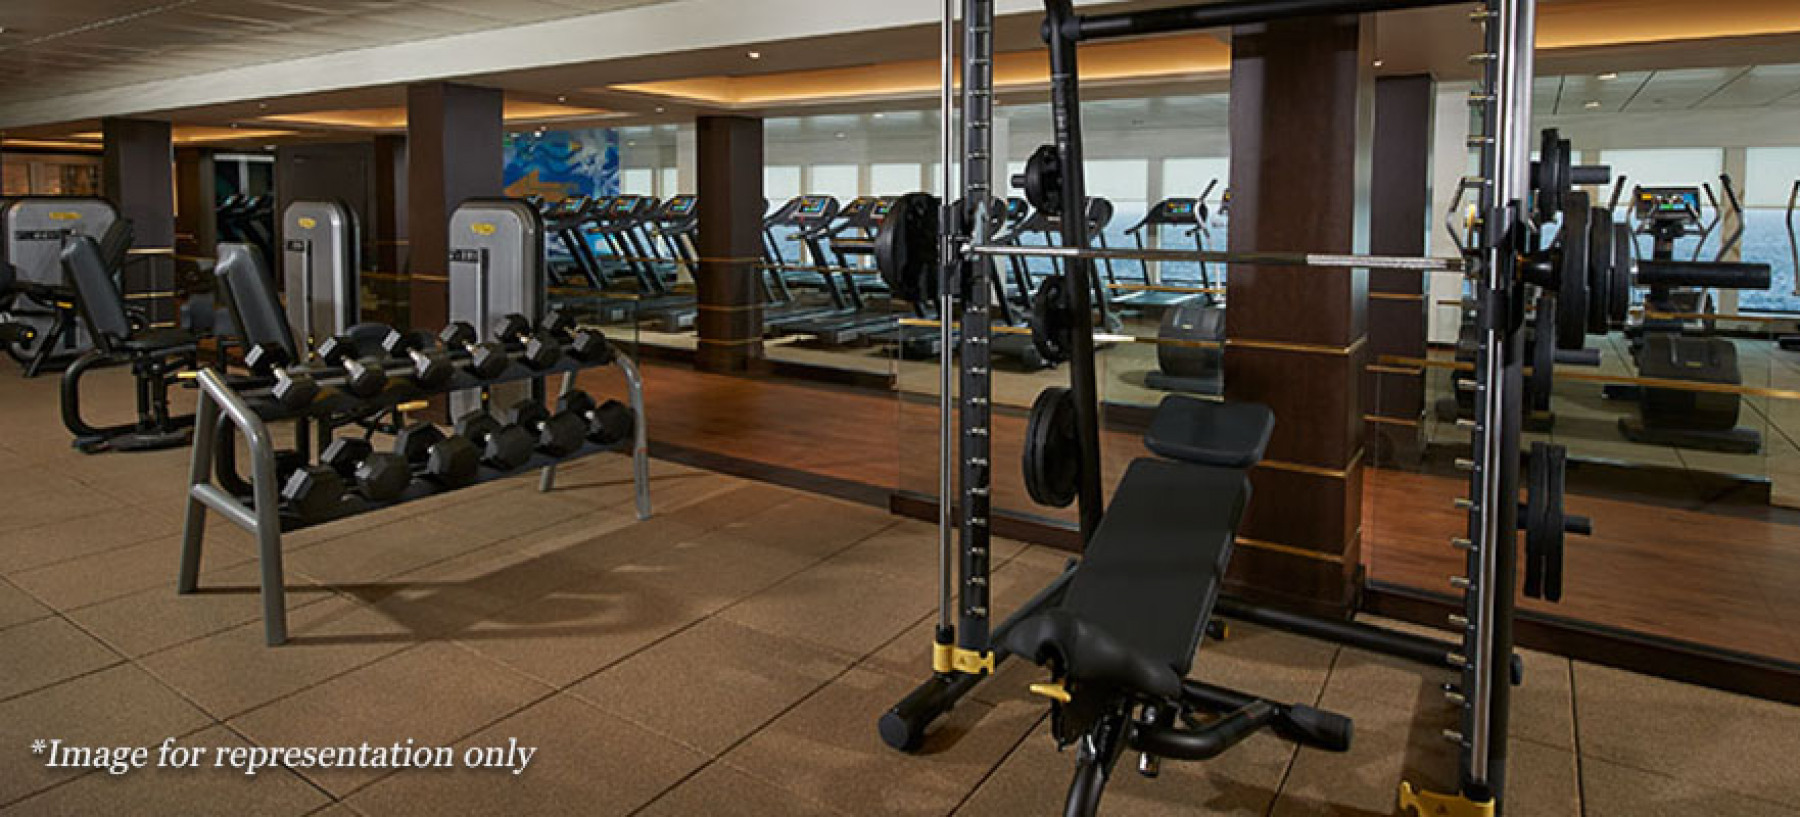 Norwegian Cruise Lines Norwegian Joy Interior Pulse Fitness Centre.jpg